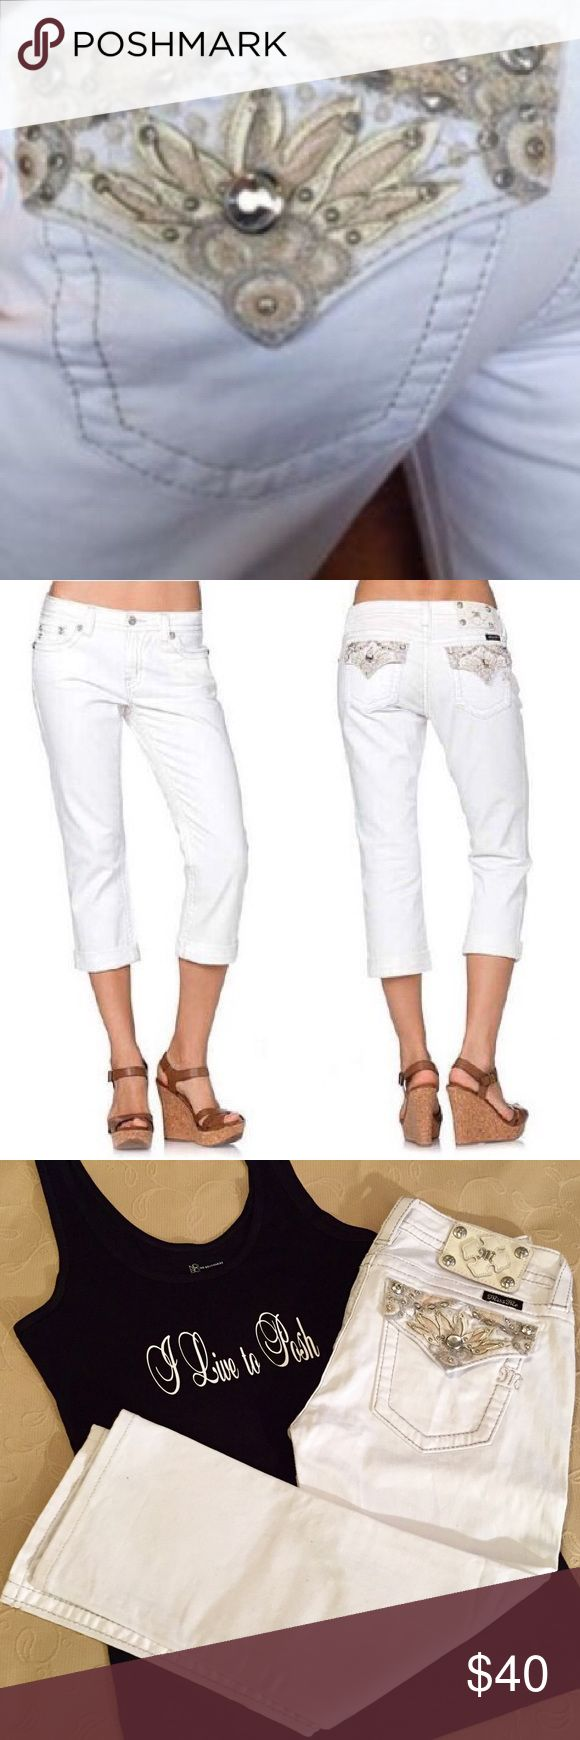 White  Floral Goddess Miss Me Capris A fresh new twist on an all time FAVORITE!! Their name says it all!!  These White Miss Me Floral Goddess Boyfriend Capri Keep it casual with this versatile capri jean, rendered with an easy fit, rollable cuffs, and contrast stitching to define the silhouette. The smooth, dark wash is easy to style with all your favorite tops. Let out your inner Goddess!! Pre-Loved from my personal collection Miss Me Jeans Ankle & Cropped